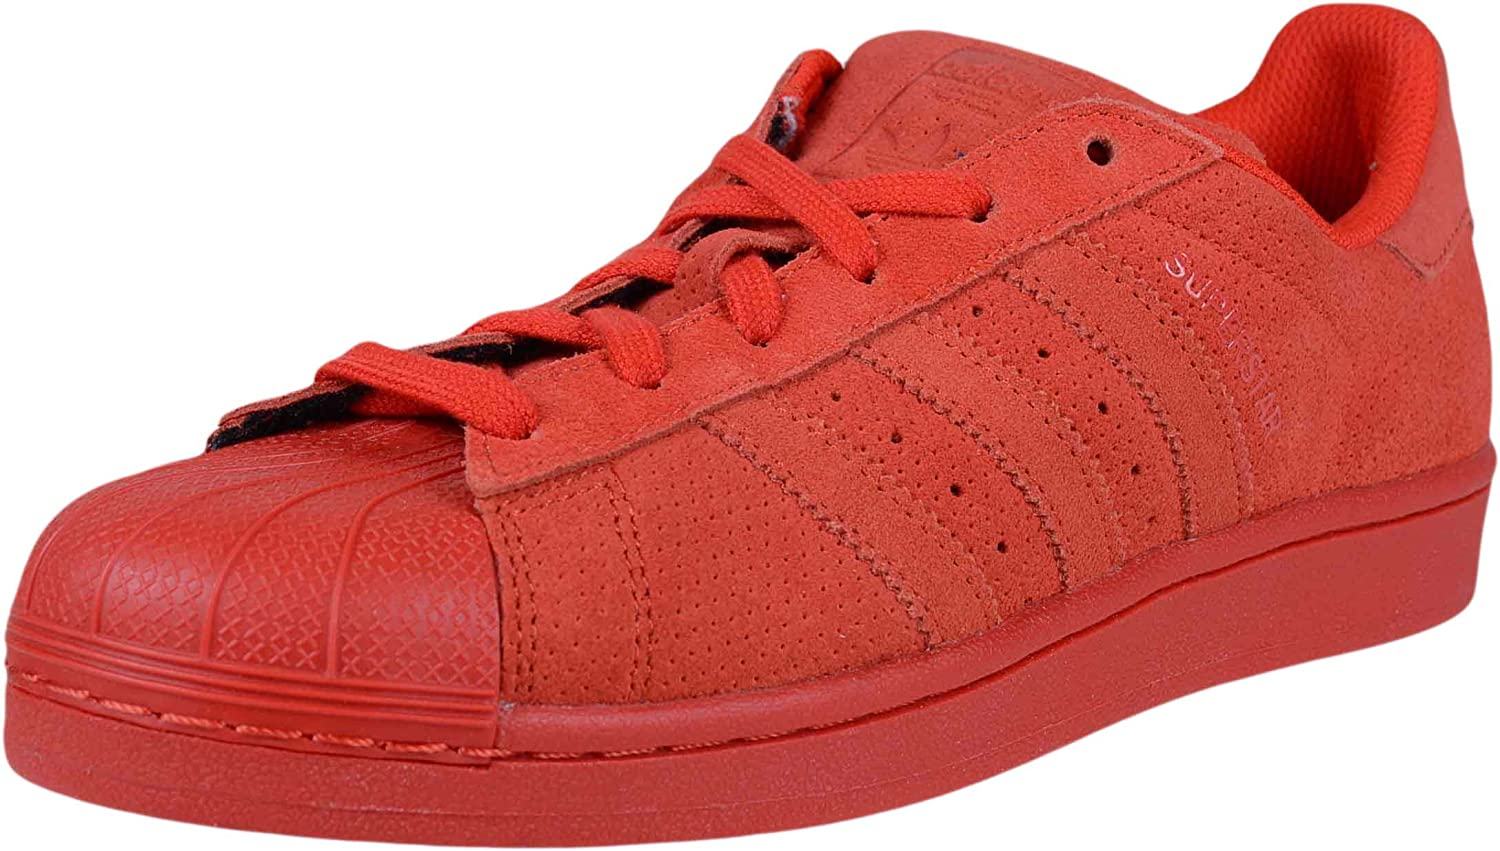 adidas Mens Superstar Rt Lace Up Sneakers Shoes Casual - Red